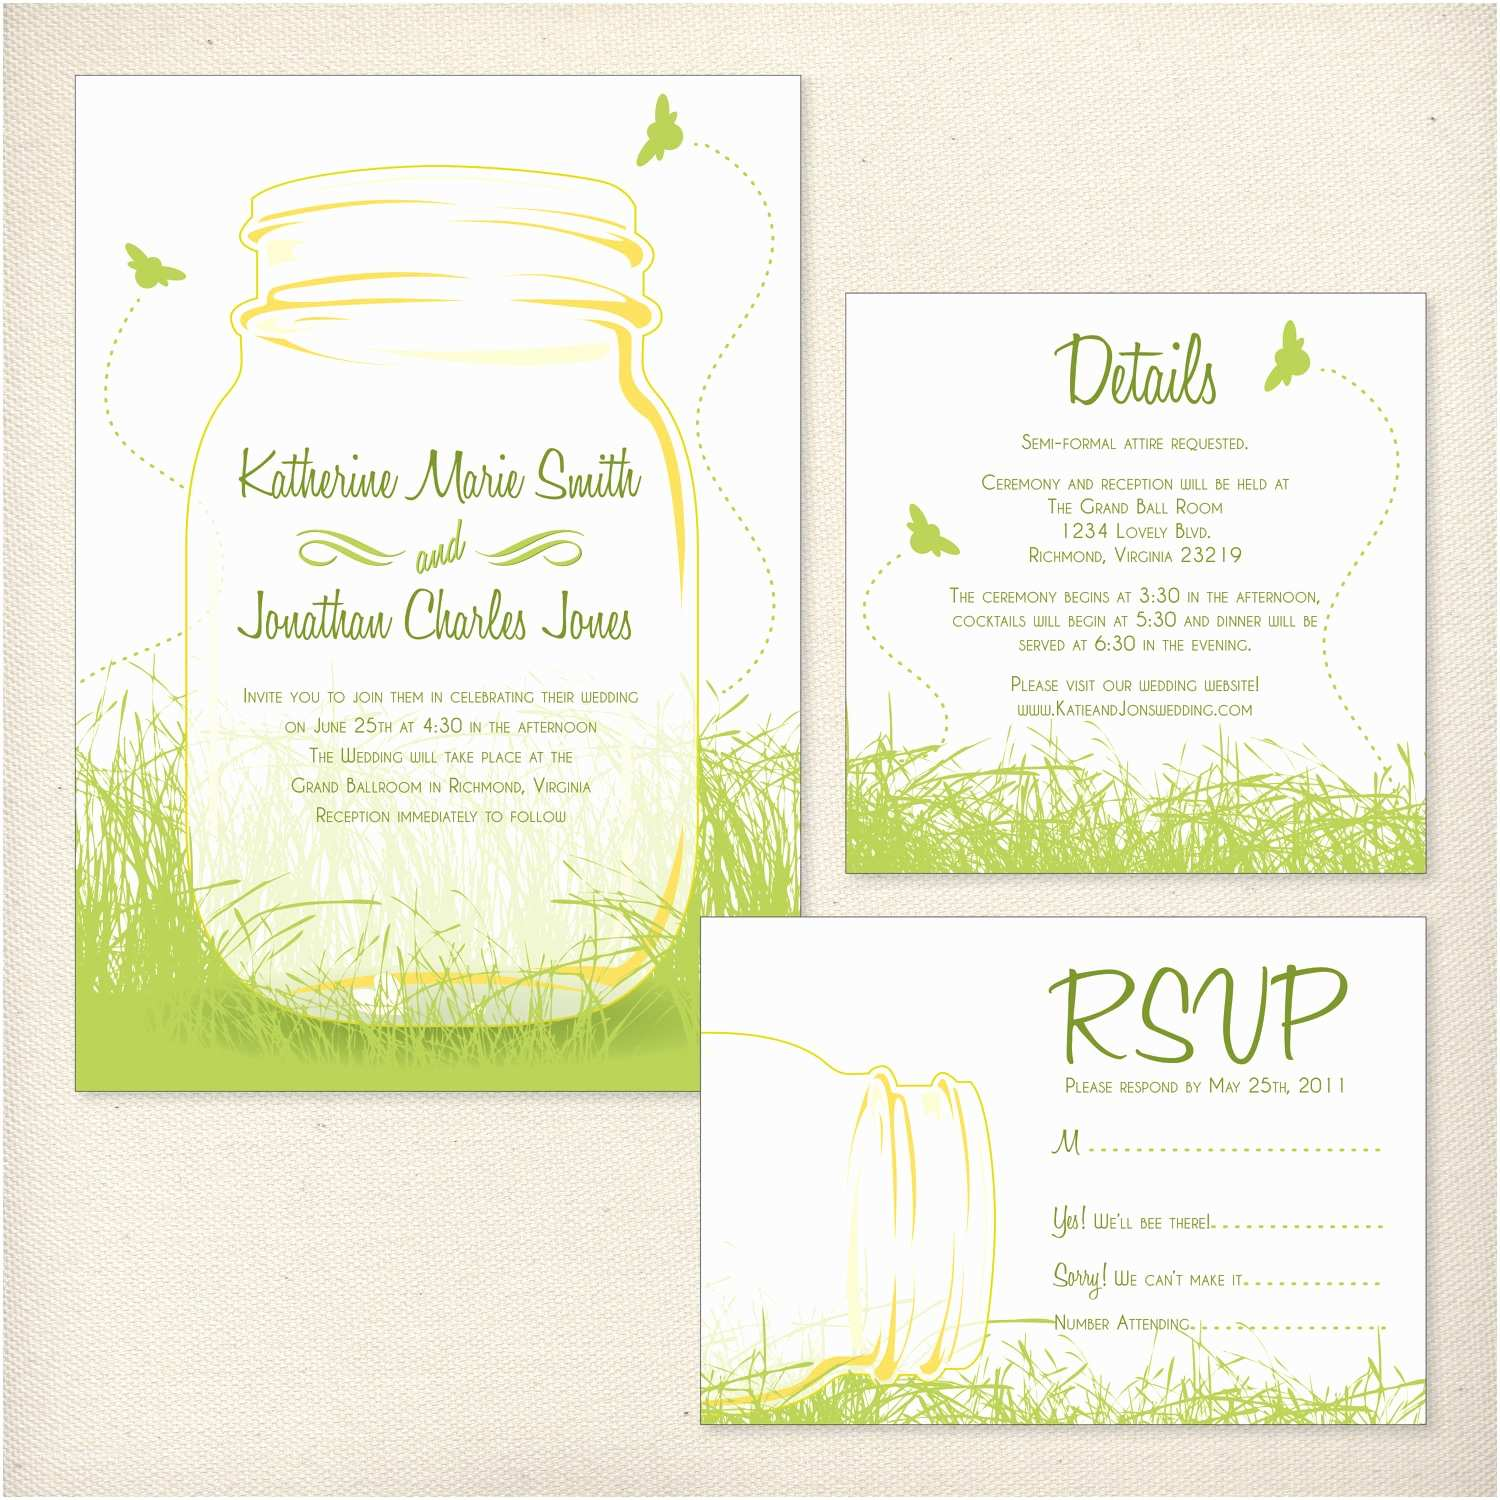 Wedding Invitation Bundles Wonderful Wedding Invitation Bundles